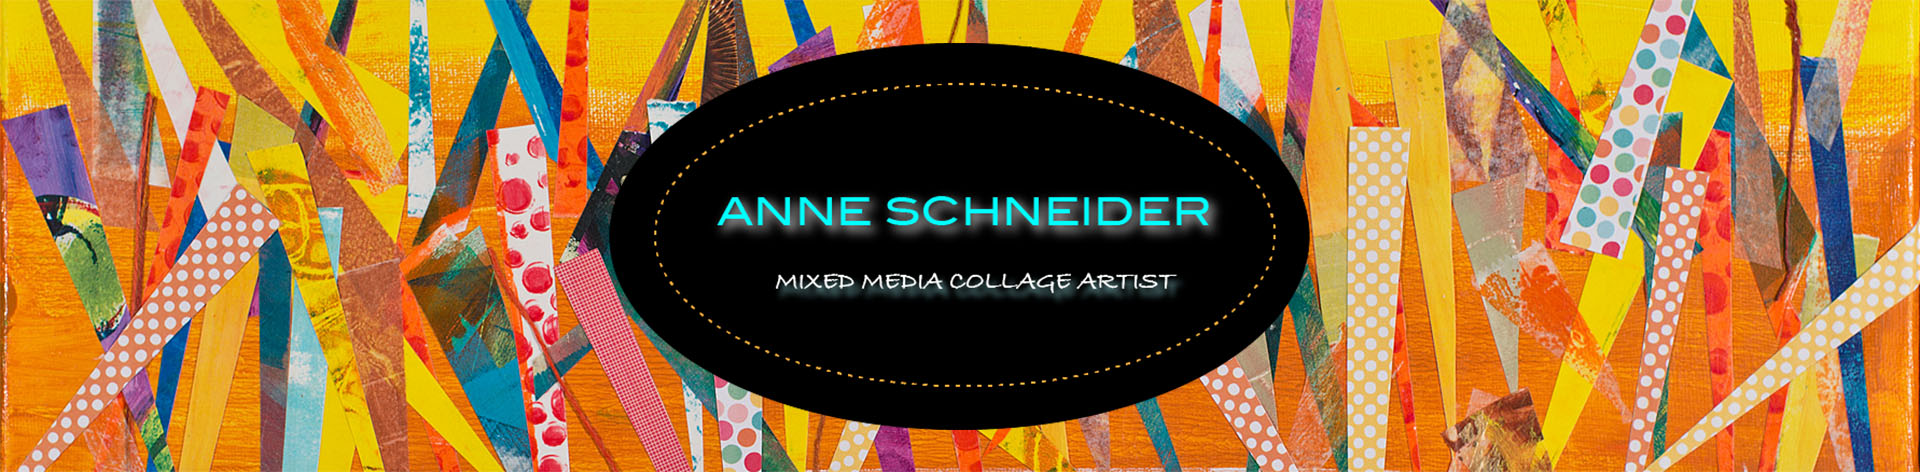 Anne Schneider Mixed Media Art header image